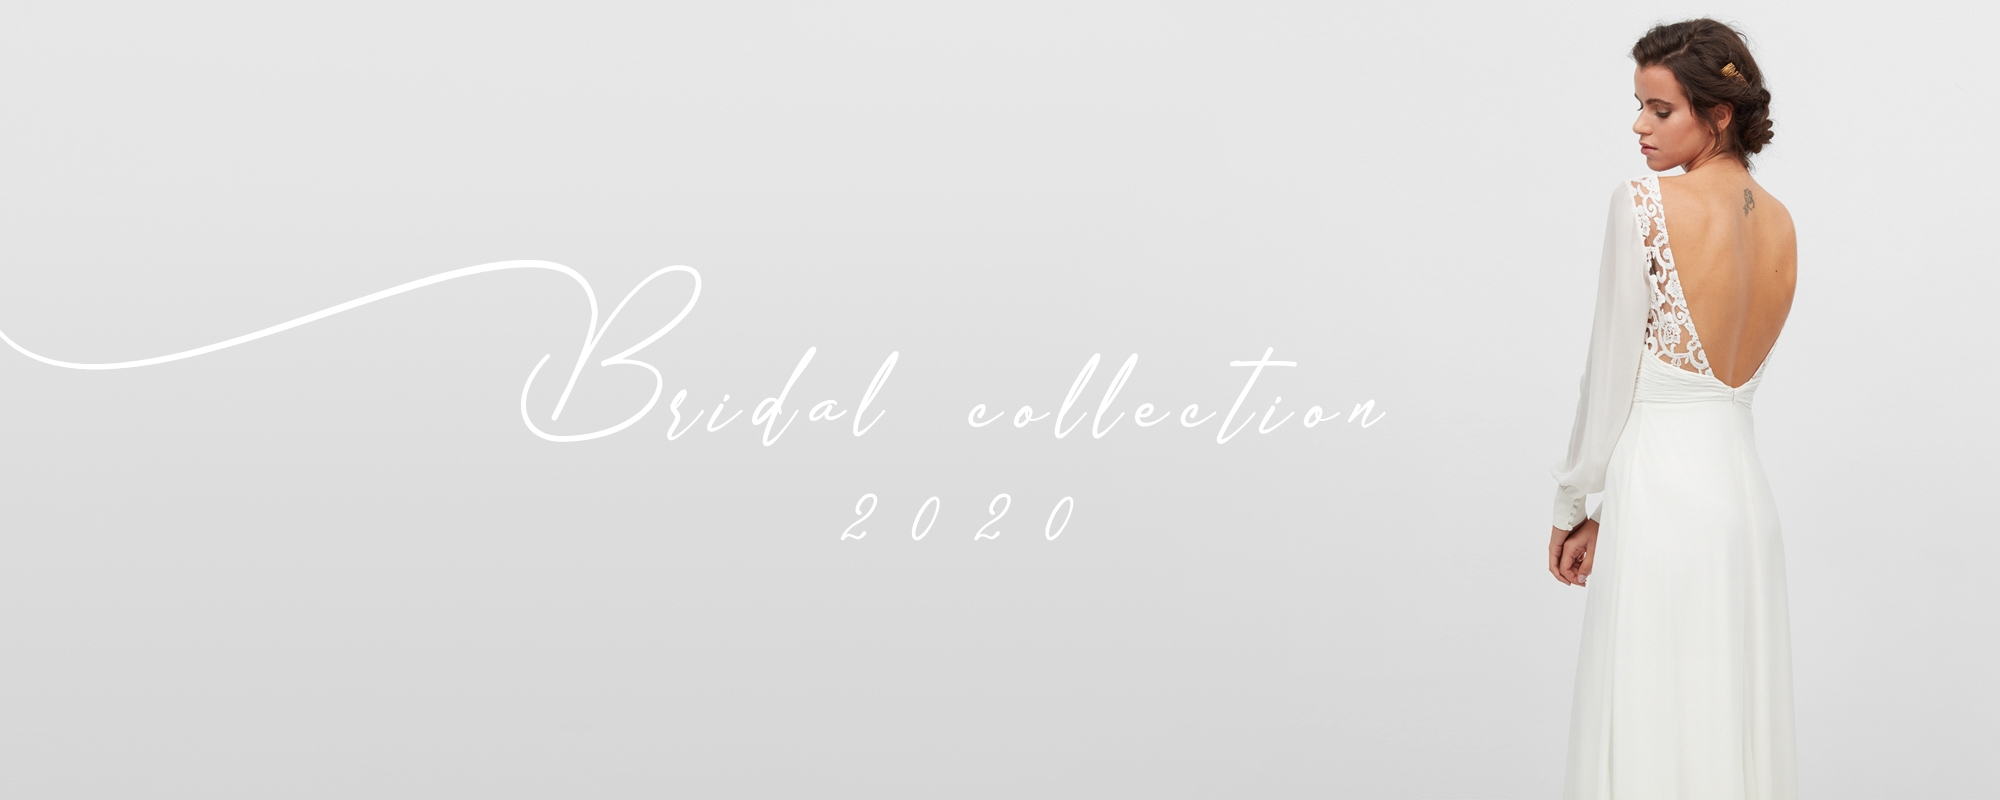 Bride collection